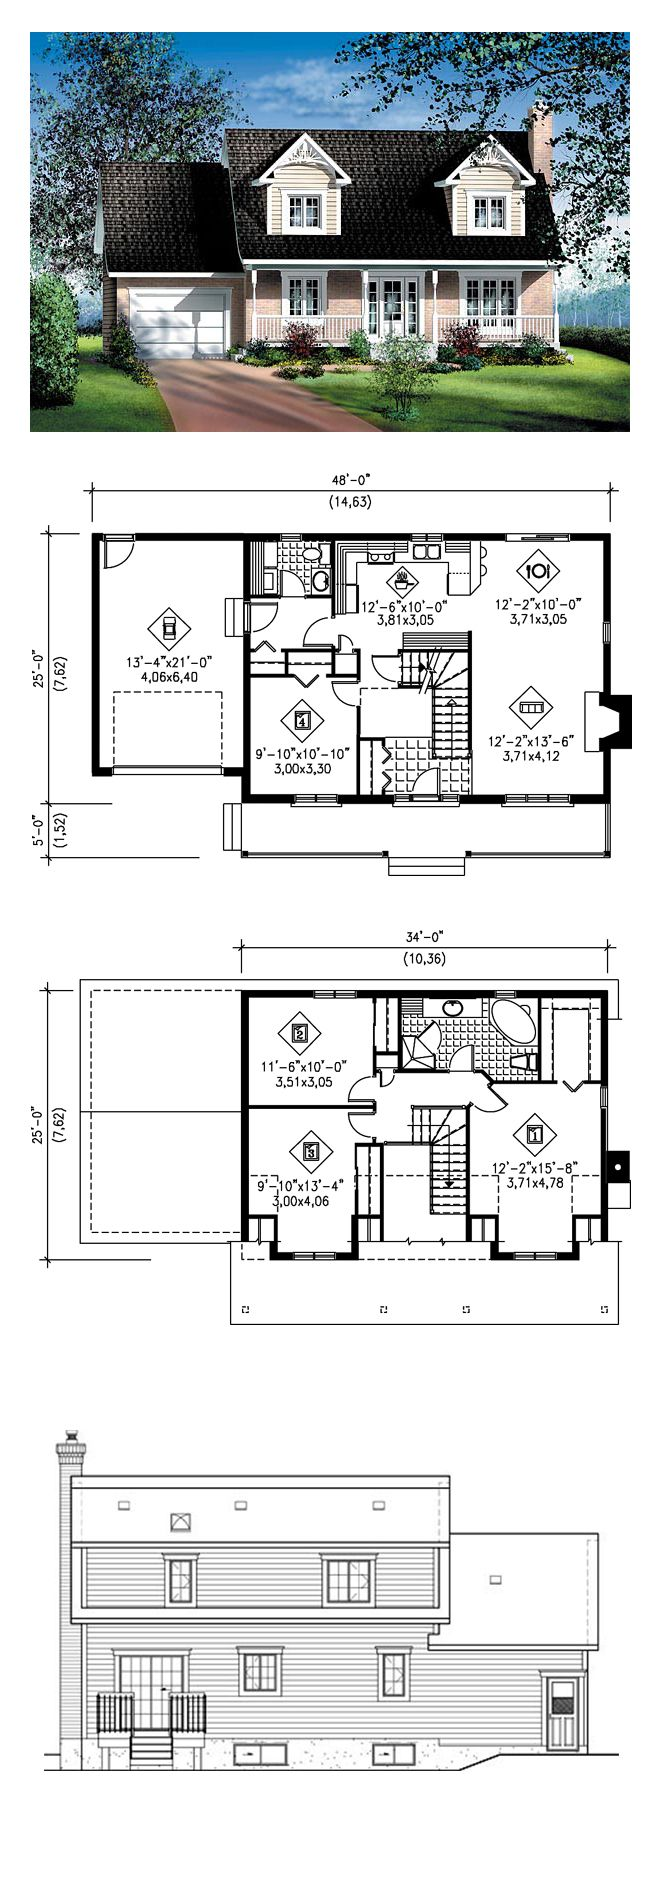 Small Of Cape Cod House Plans